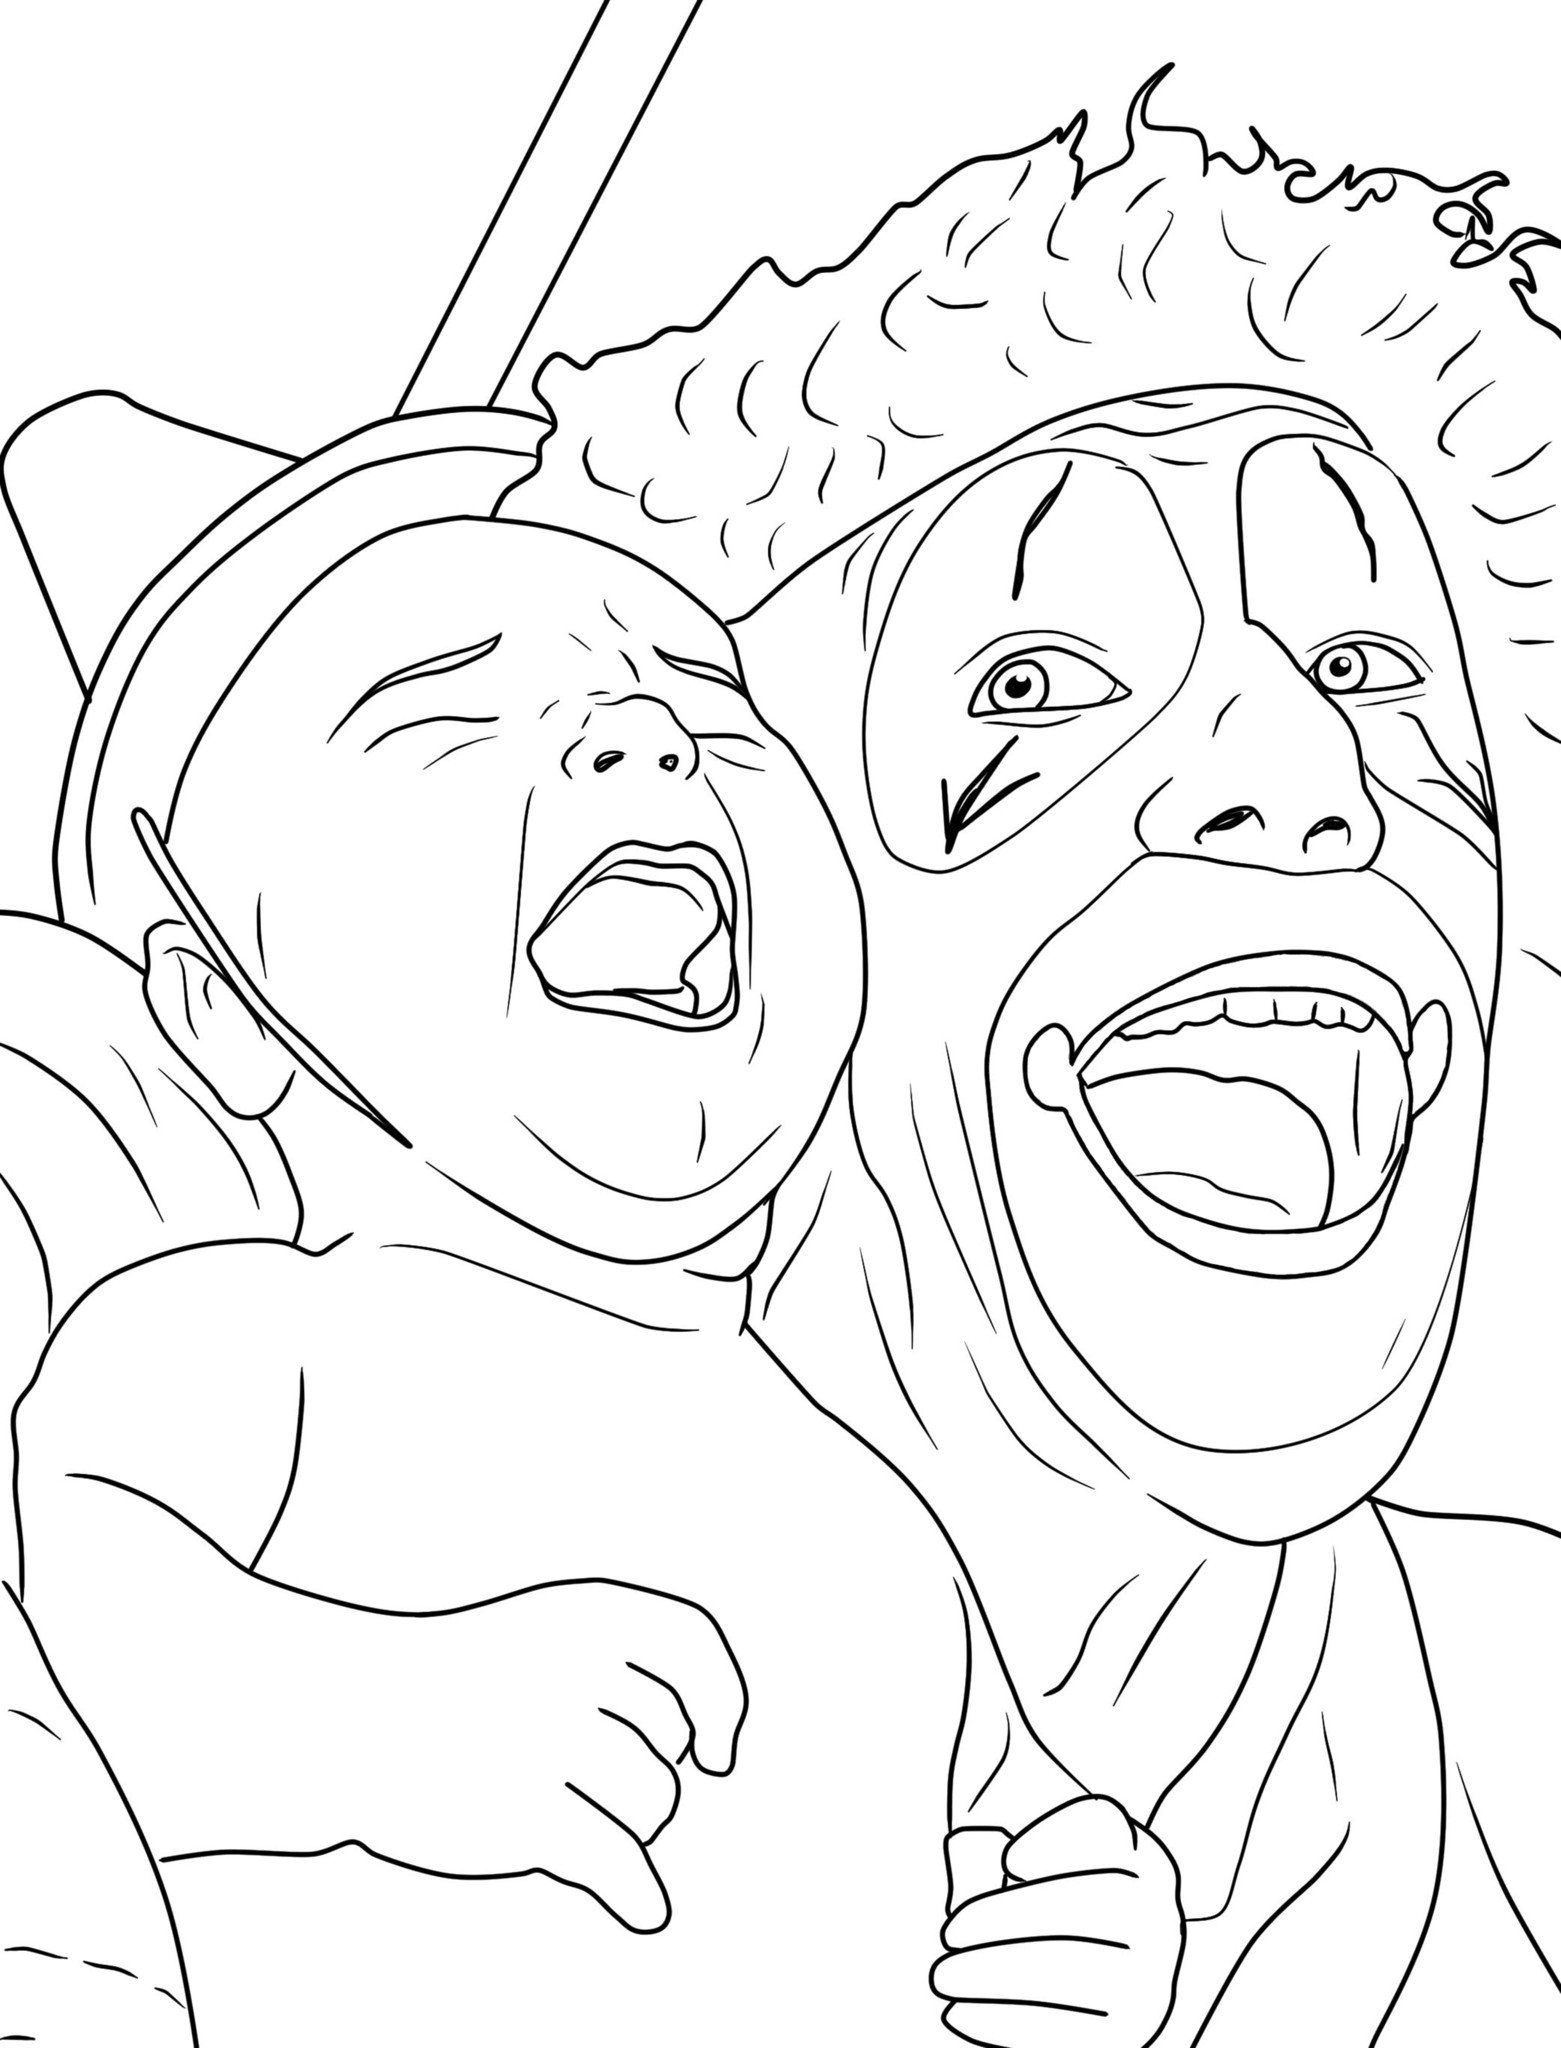 Creepy Clown Coloring Pages Coloring